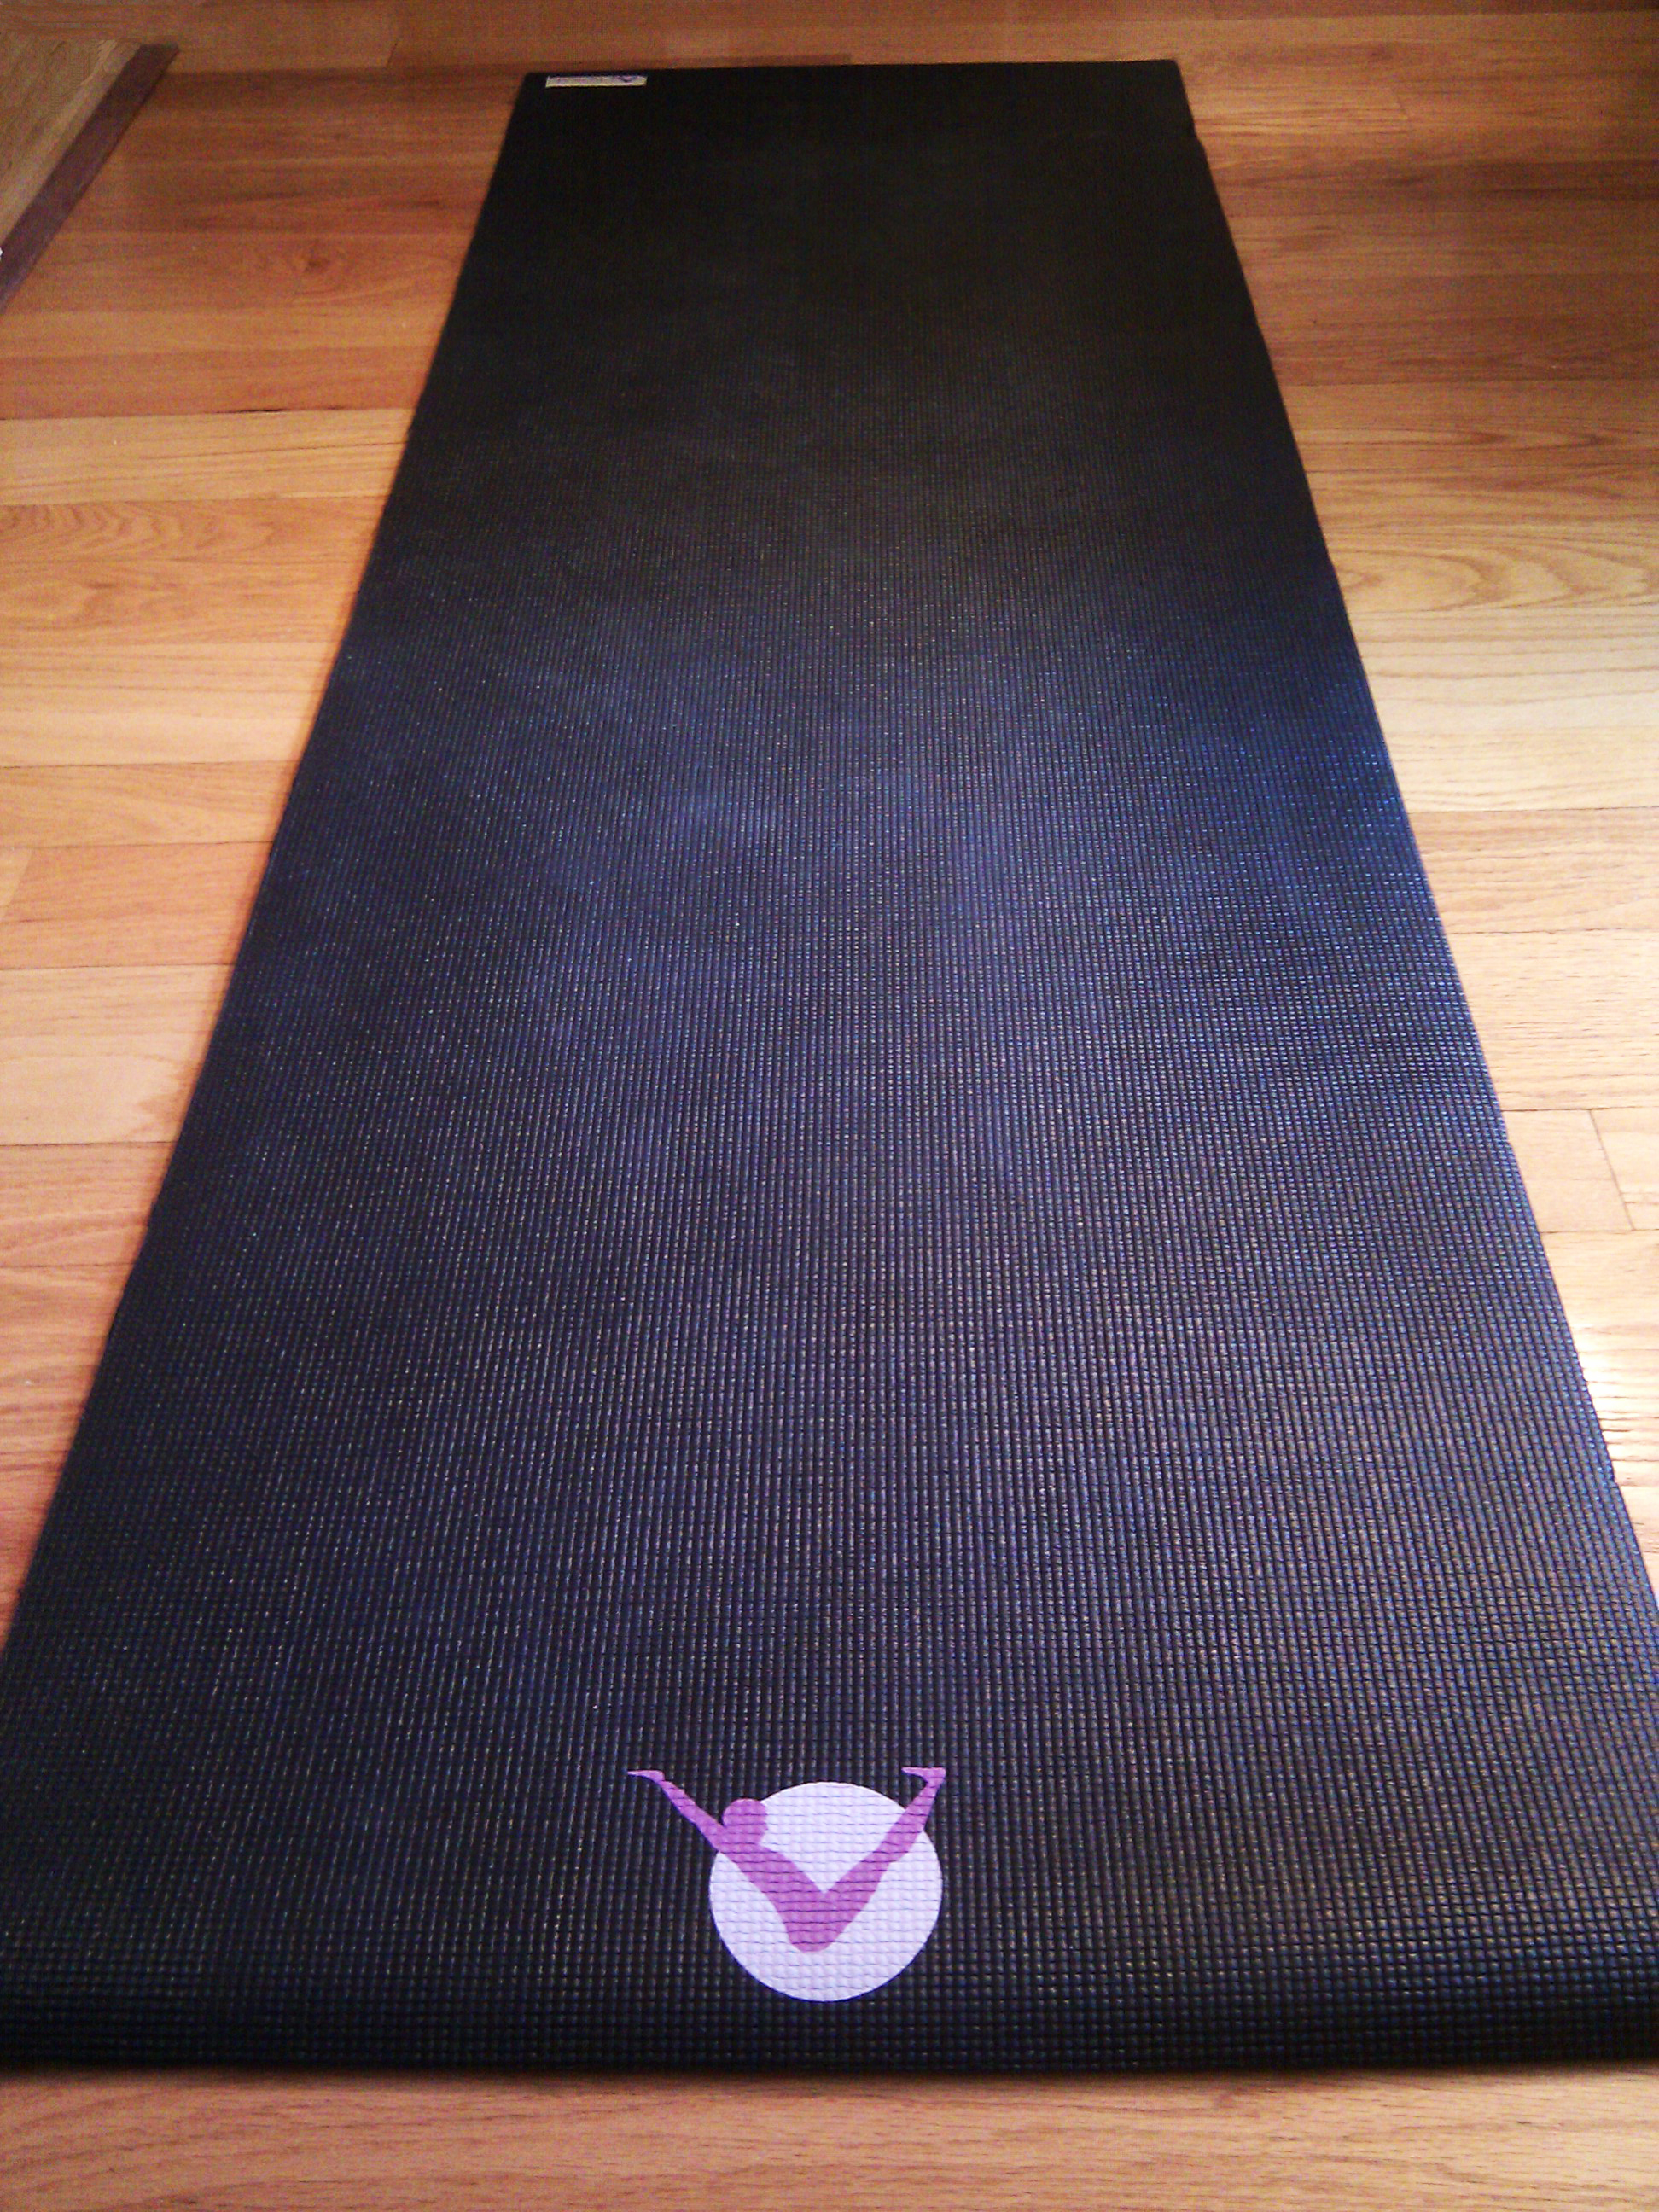 m archives product category red diamond aura jade yoga harmony mat img